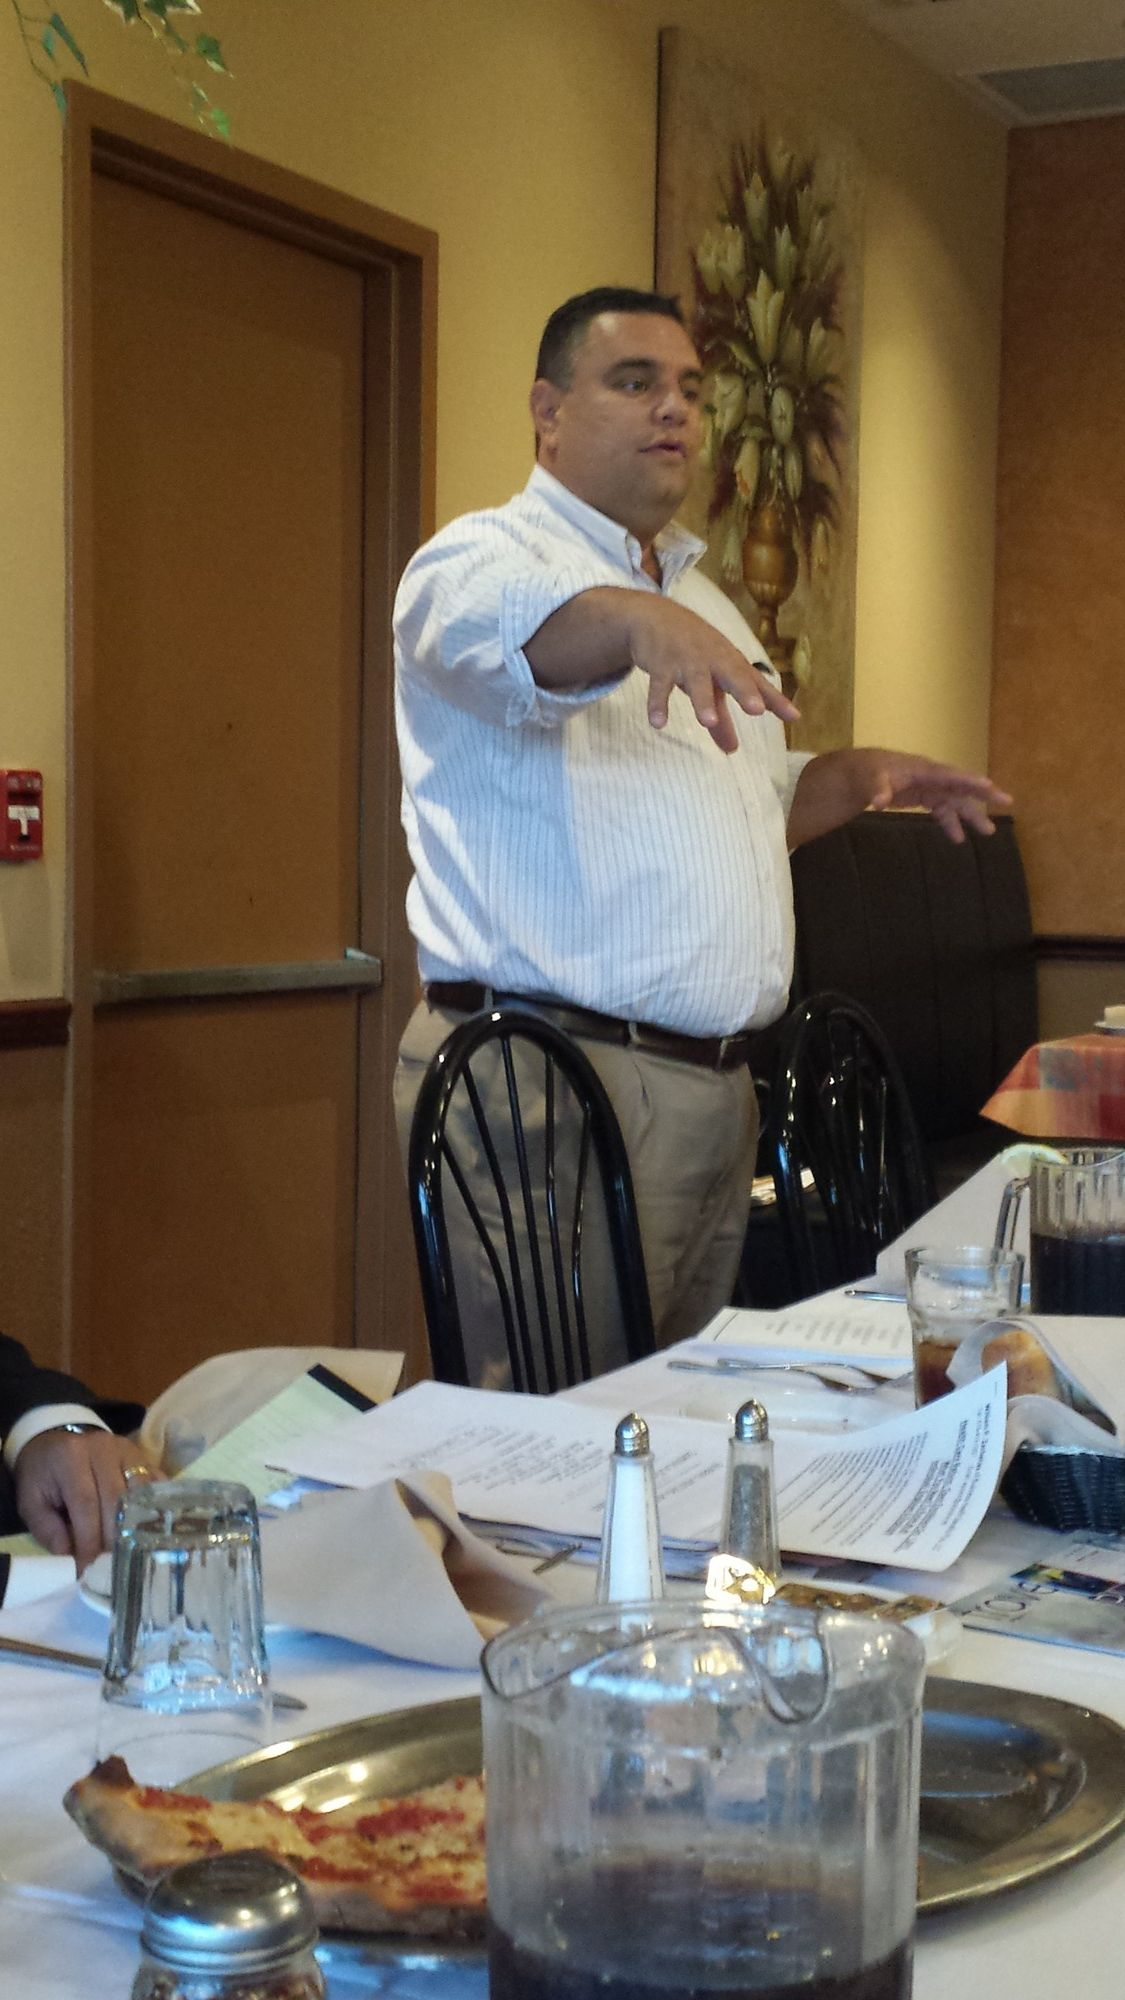 Guest speaker Bill Zacharias spoke at the Franklin Square Chamber of Commerce Dinner at Cinelli